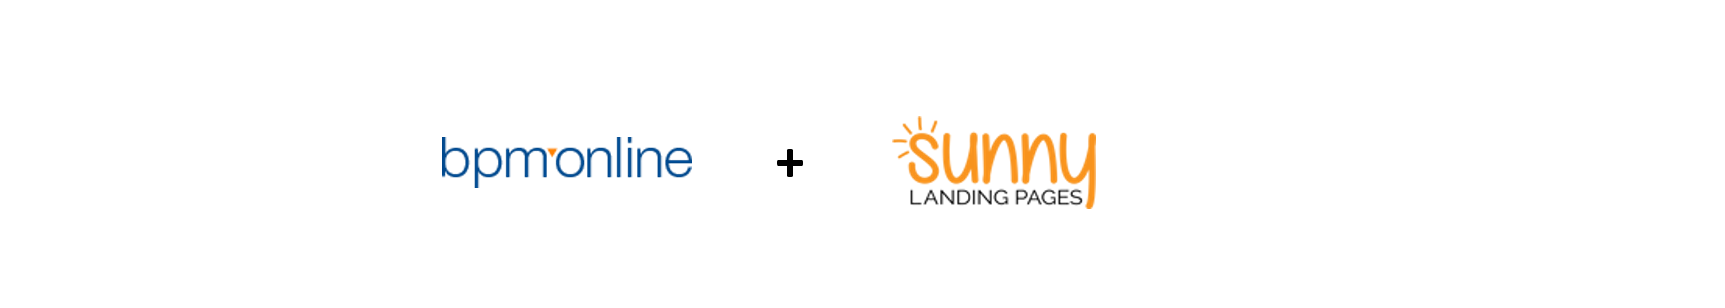 Bpmonline and sunny landing pages integration